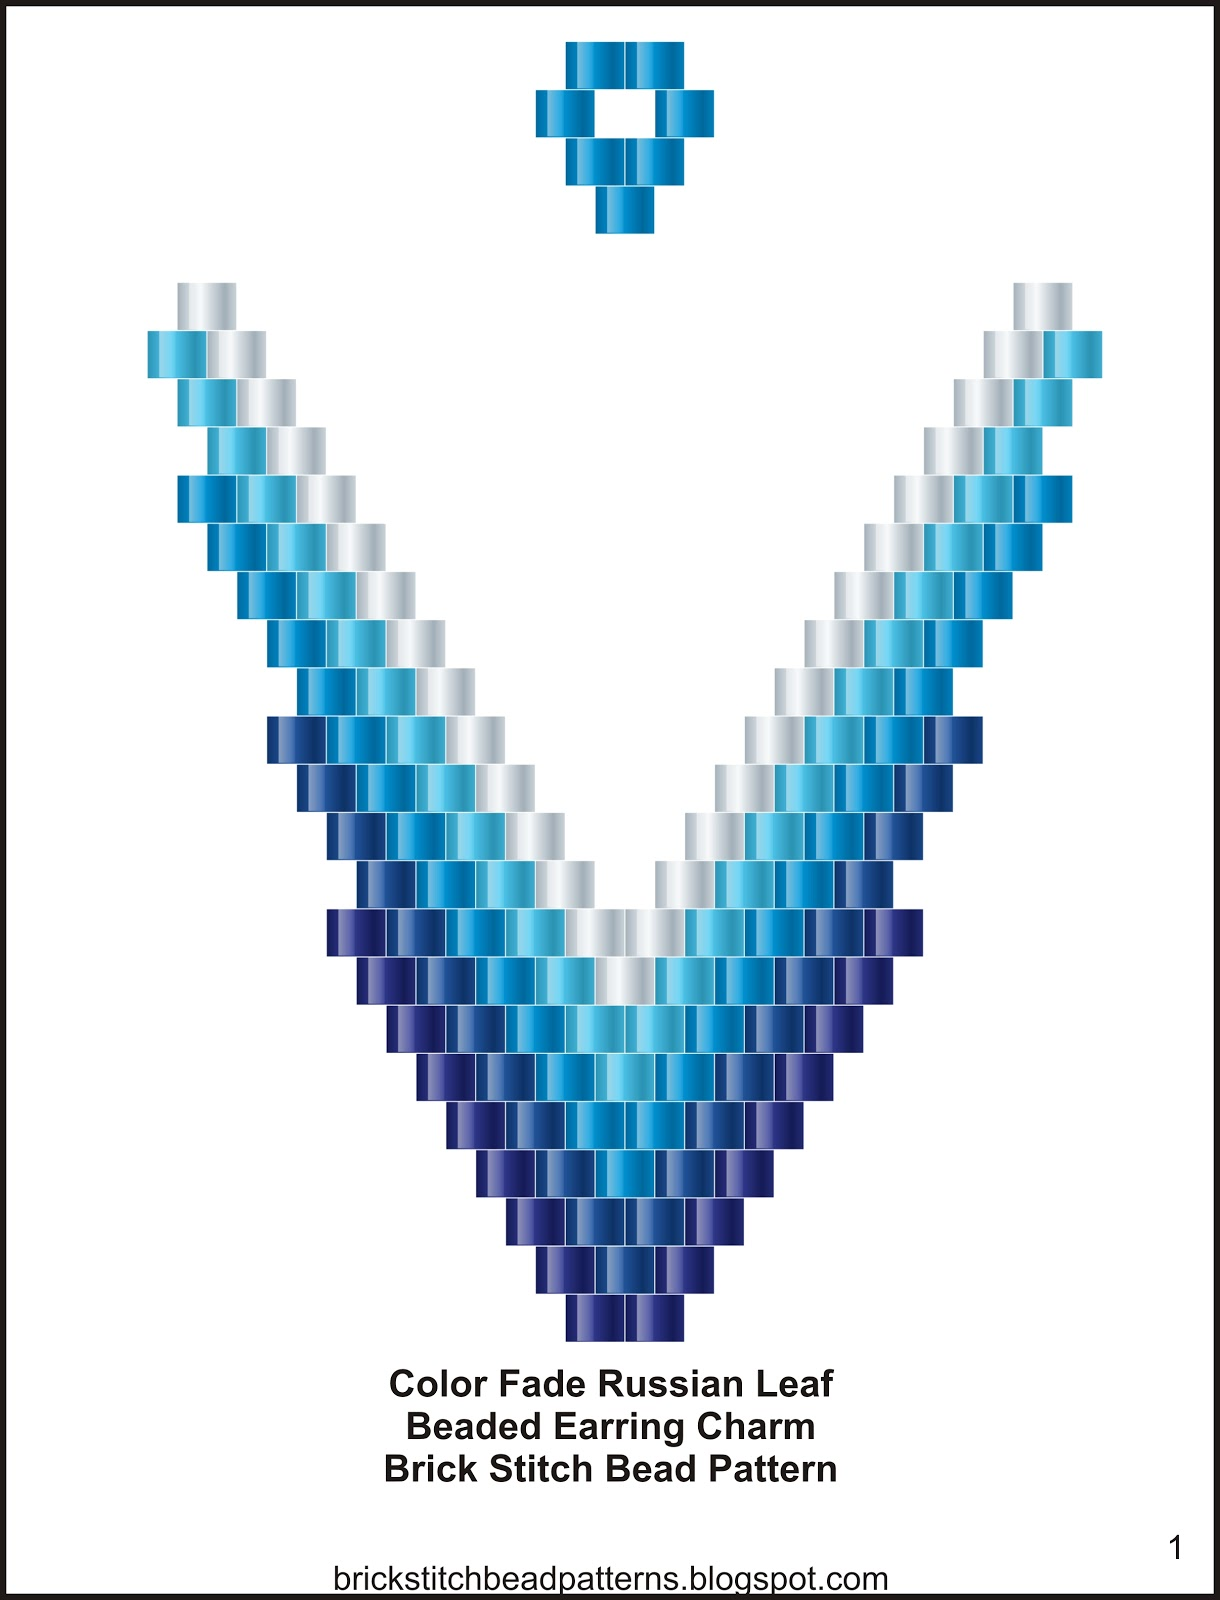 Brick Stitch Bead Patterns Journal: Free Color Fade Small ...